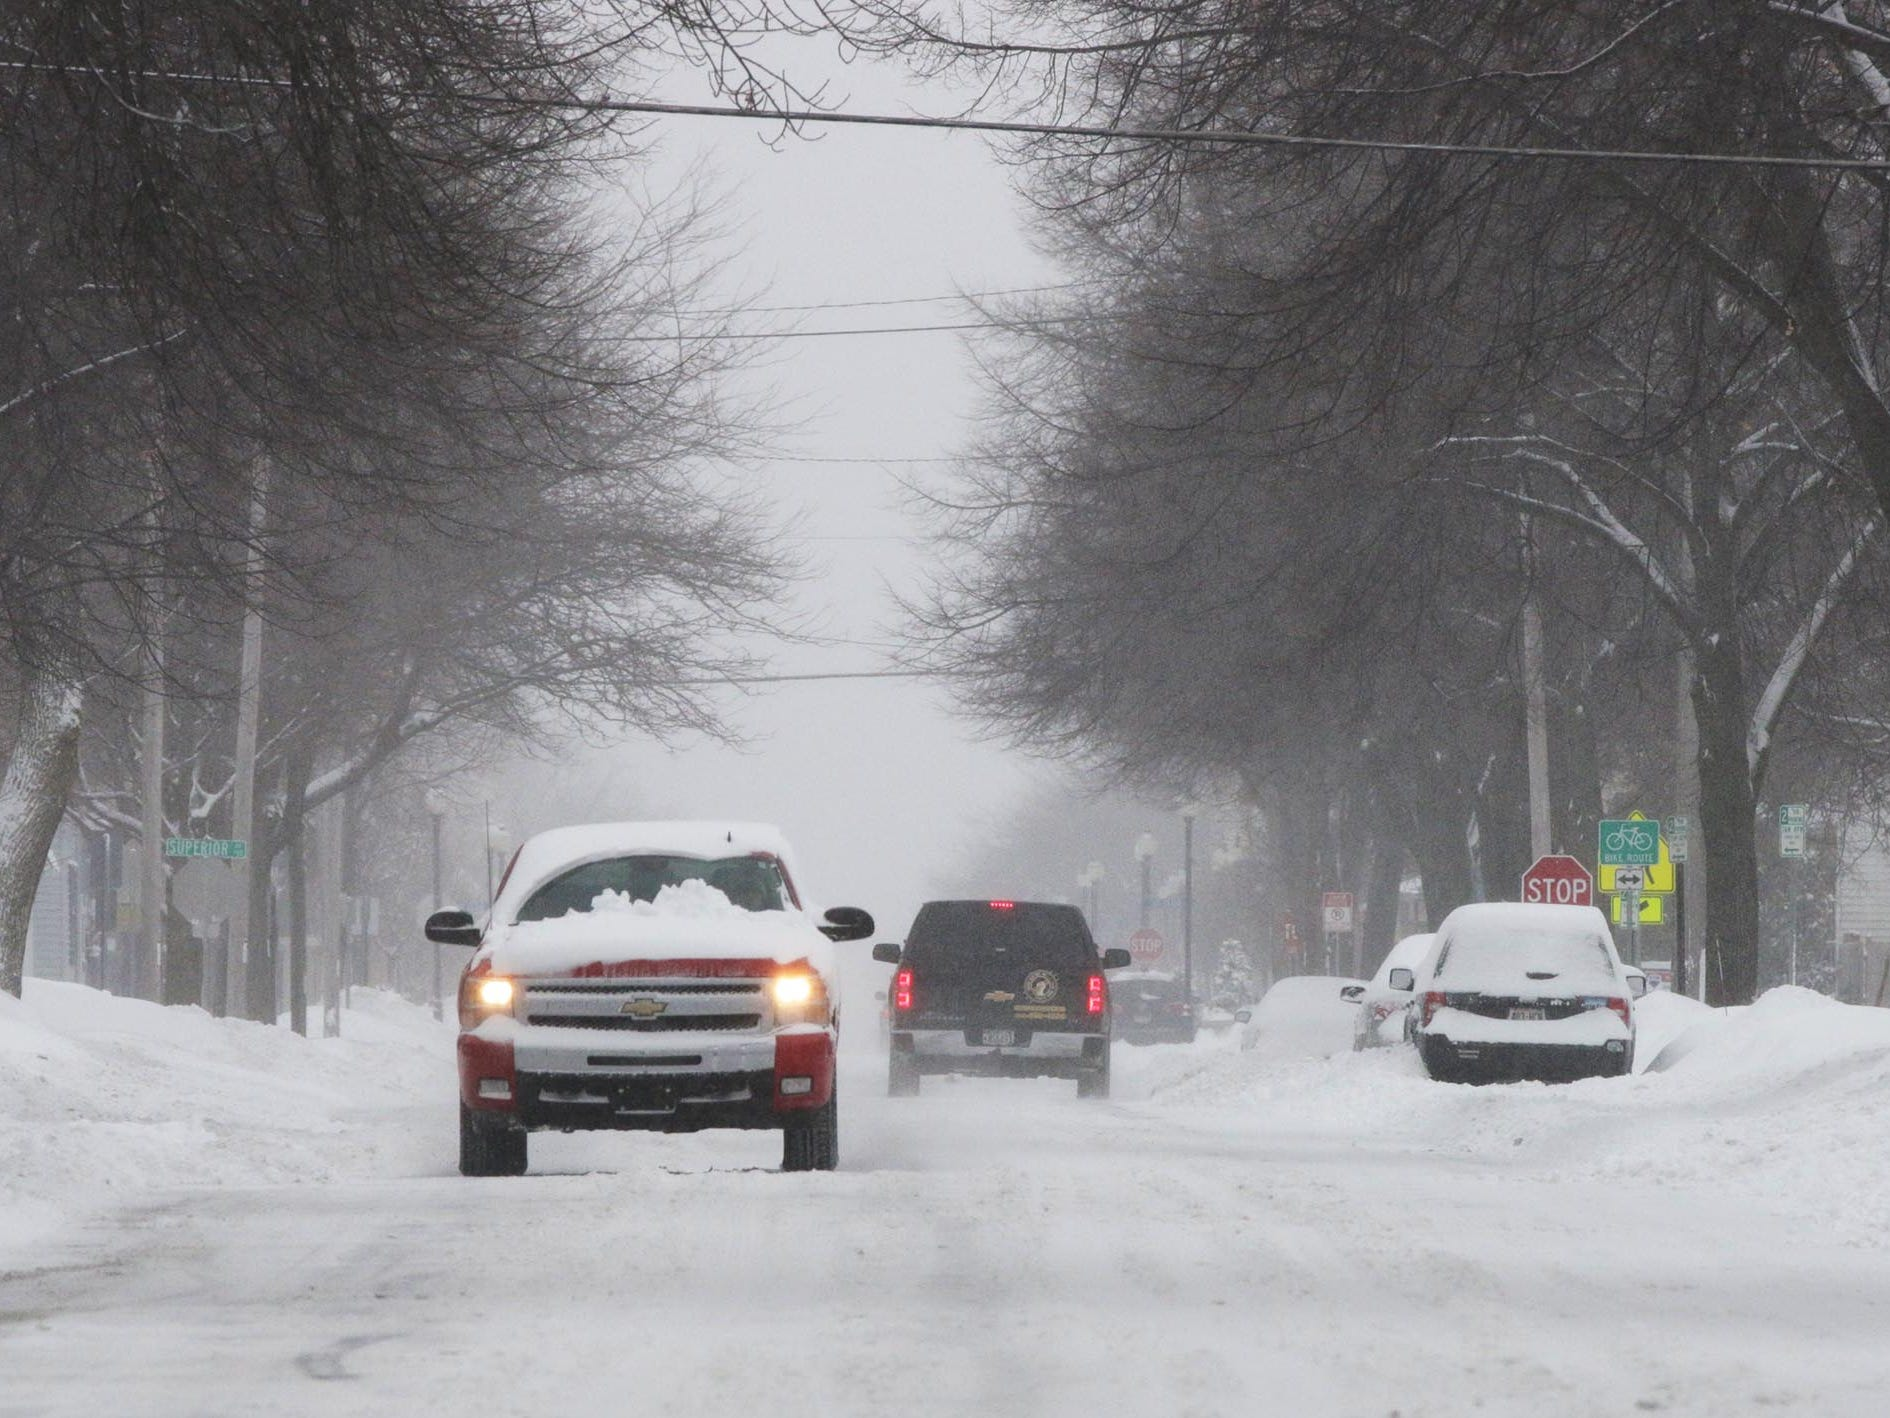 A winter wonderland greeted motorists on North 8th Street, Tuesday, February 12, 2019, in Sheboygan, Wis.